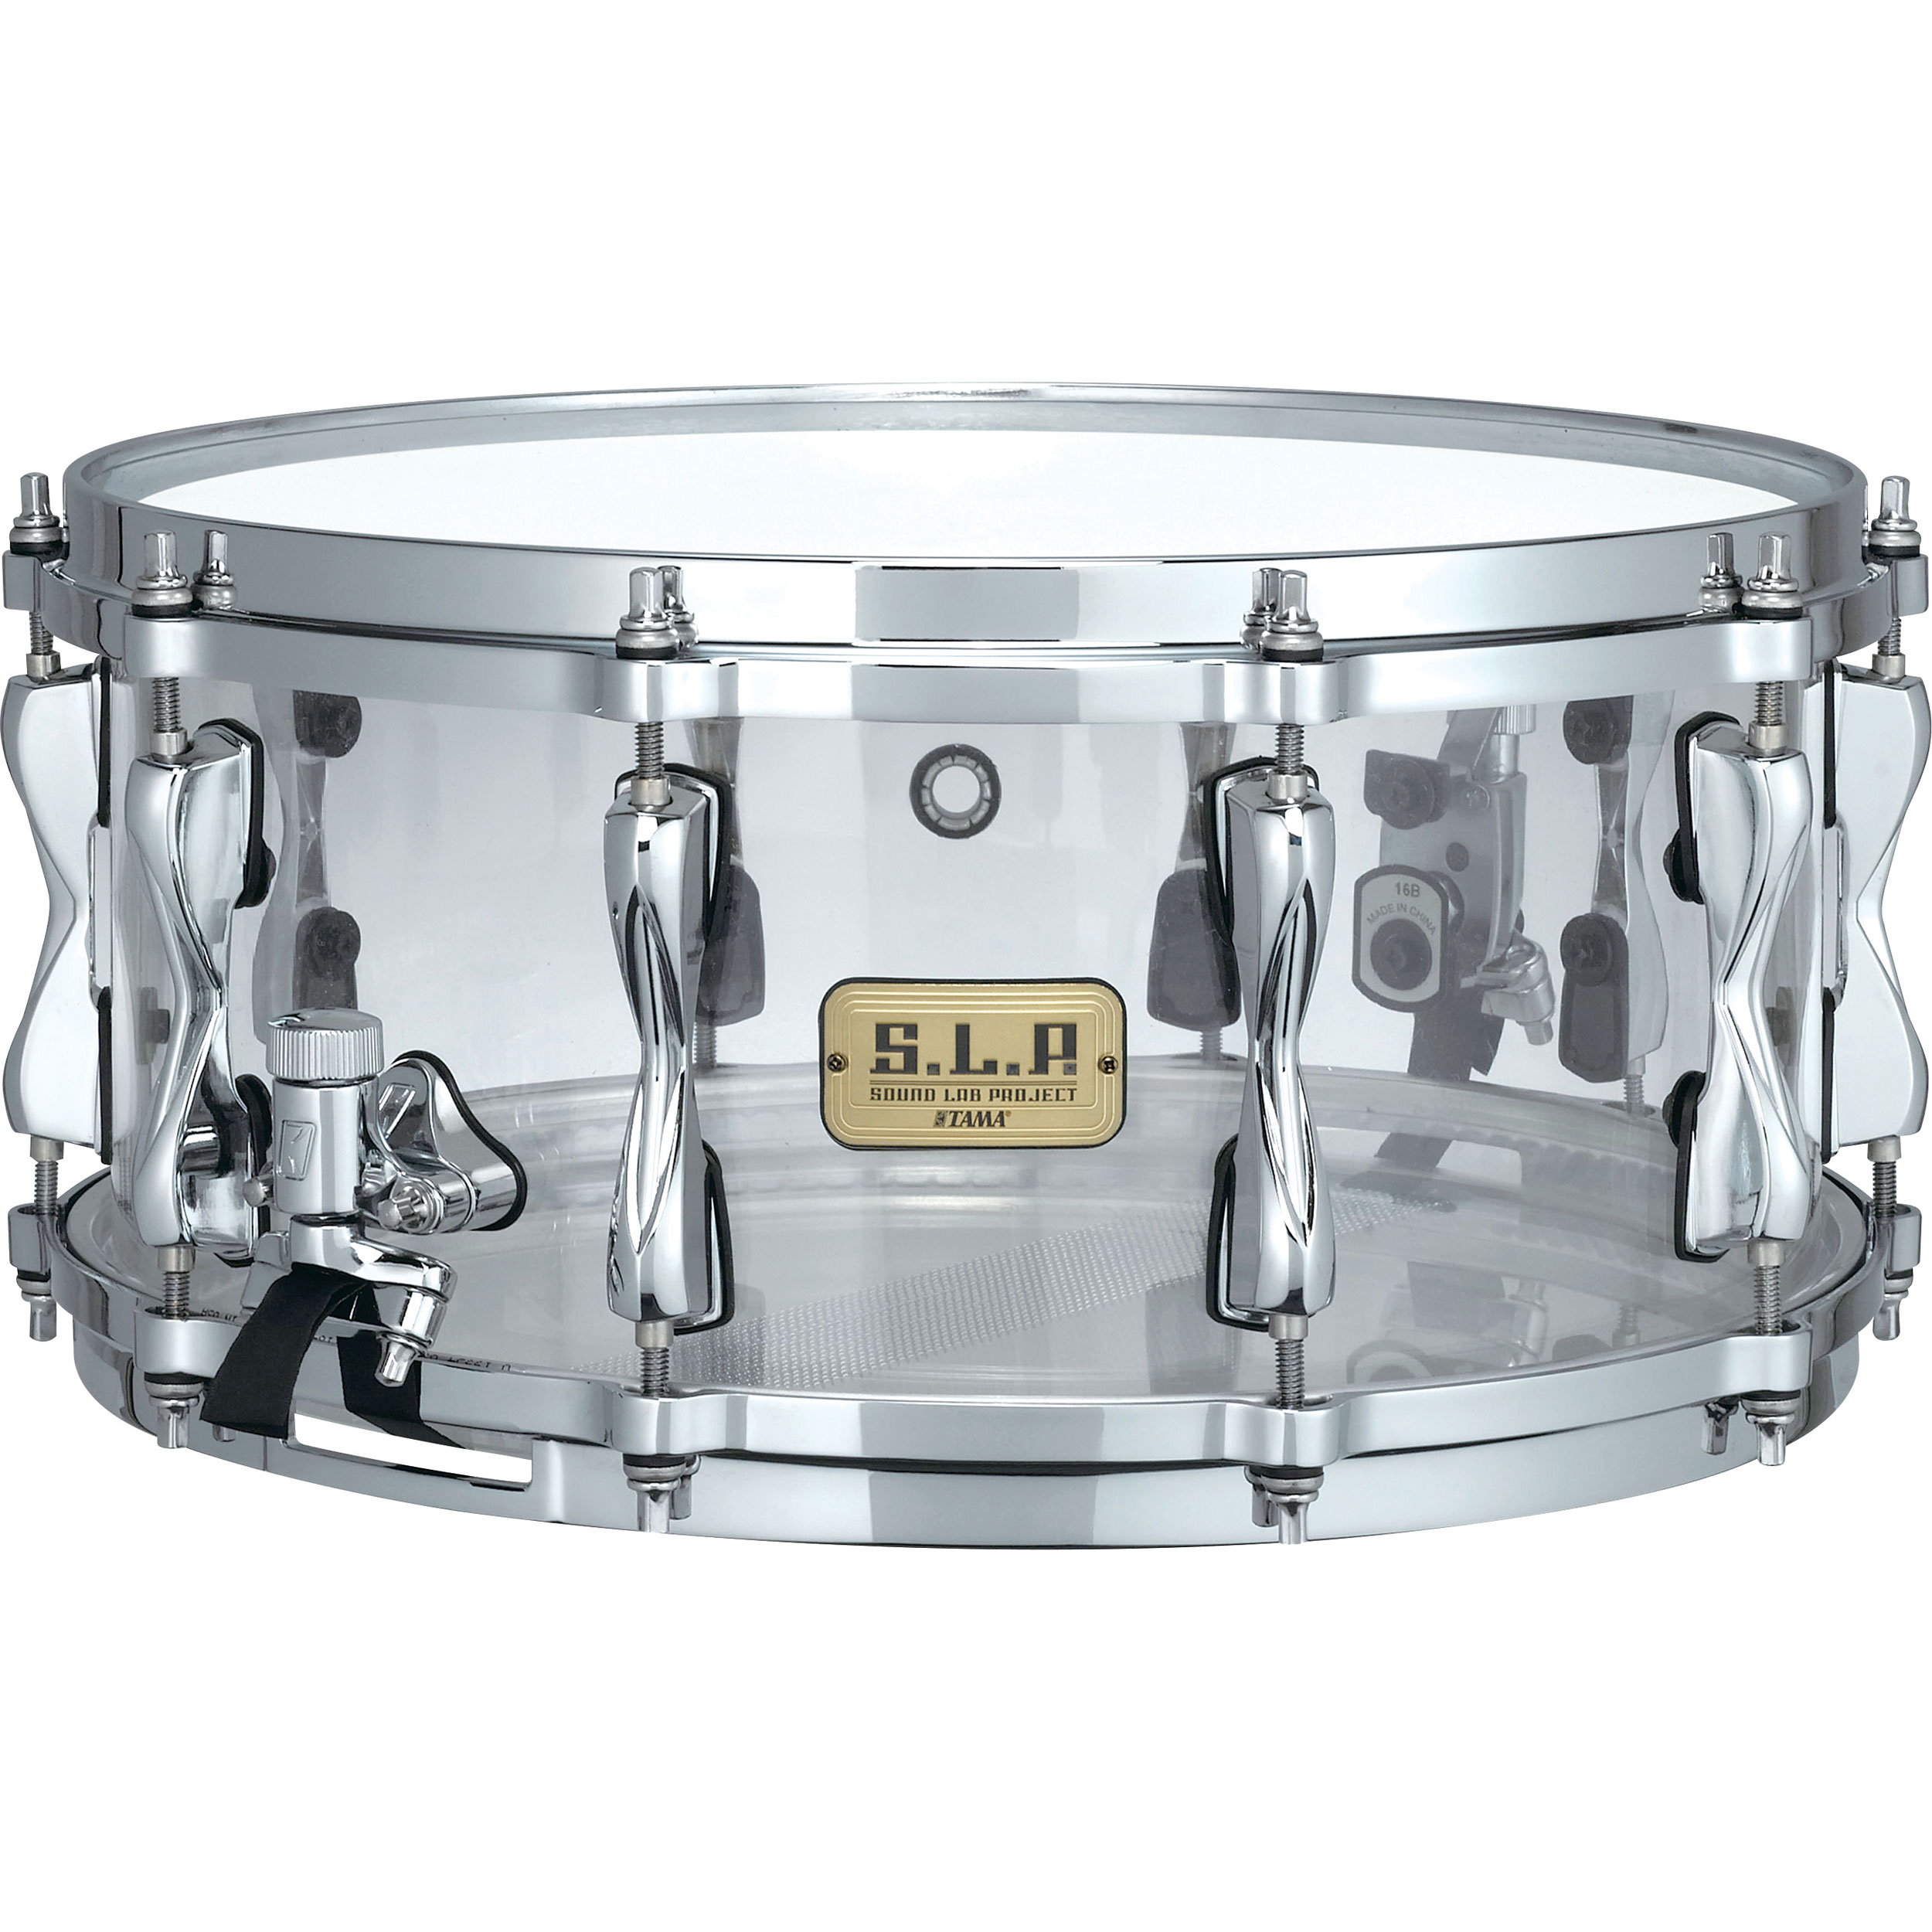 "Tama 6.5"" x 14"" Limited Edition S.L.P. Mirage Acrylic Snare Drum"